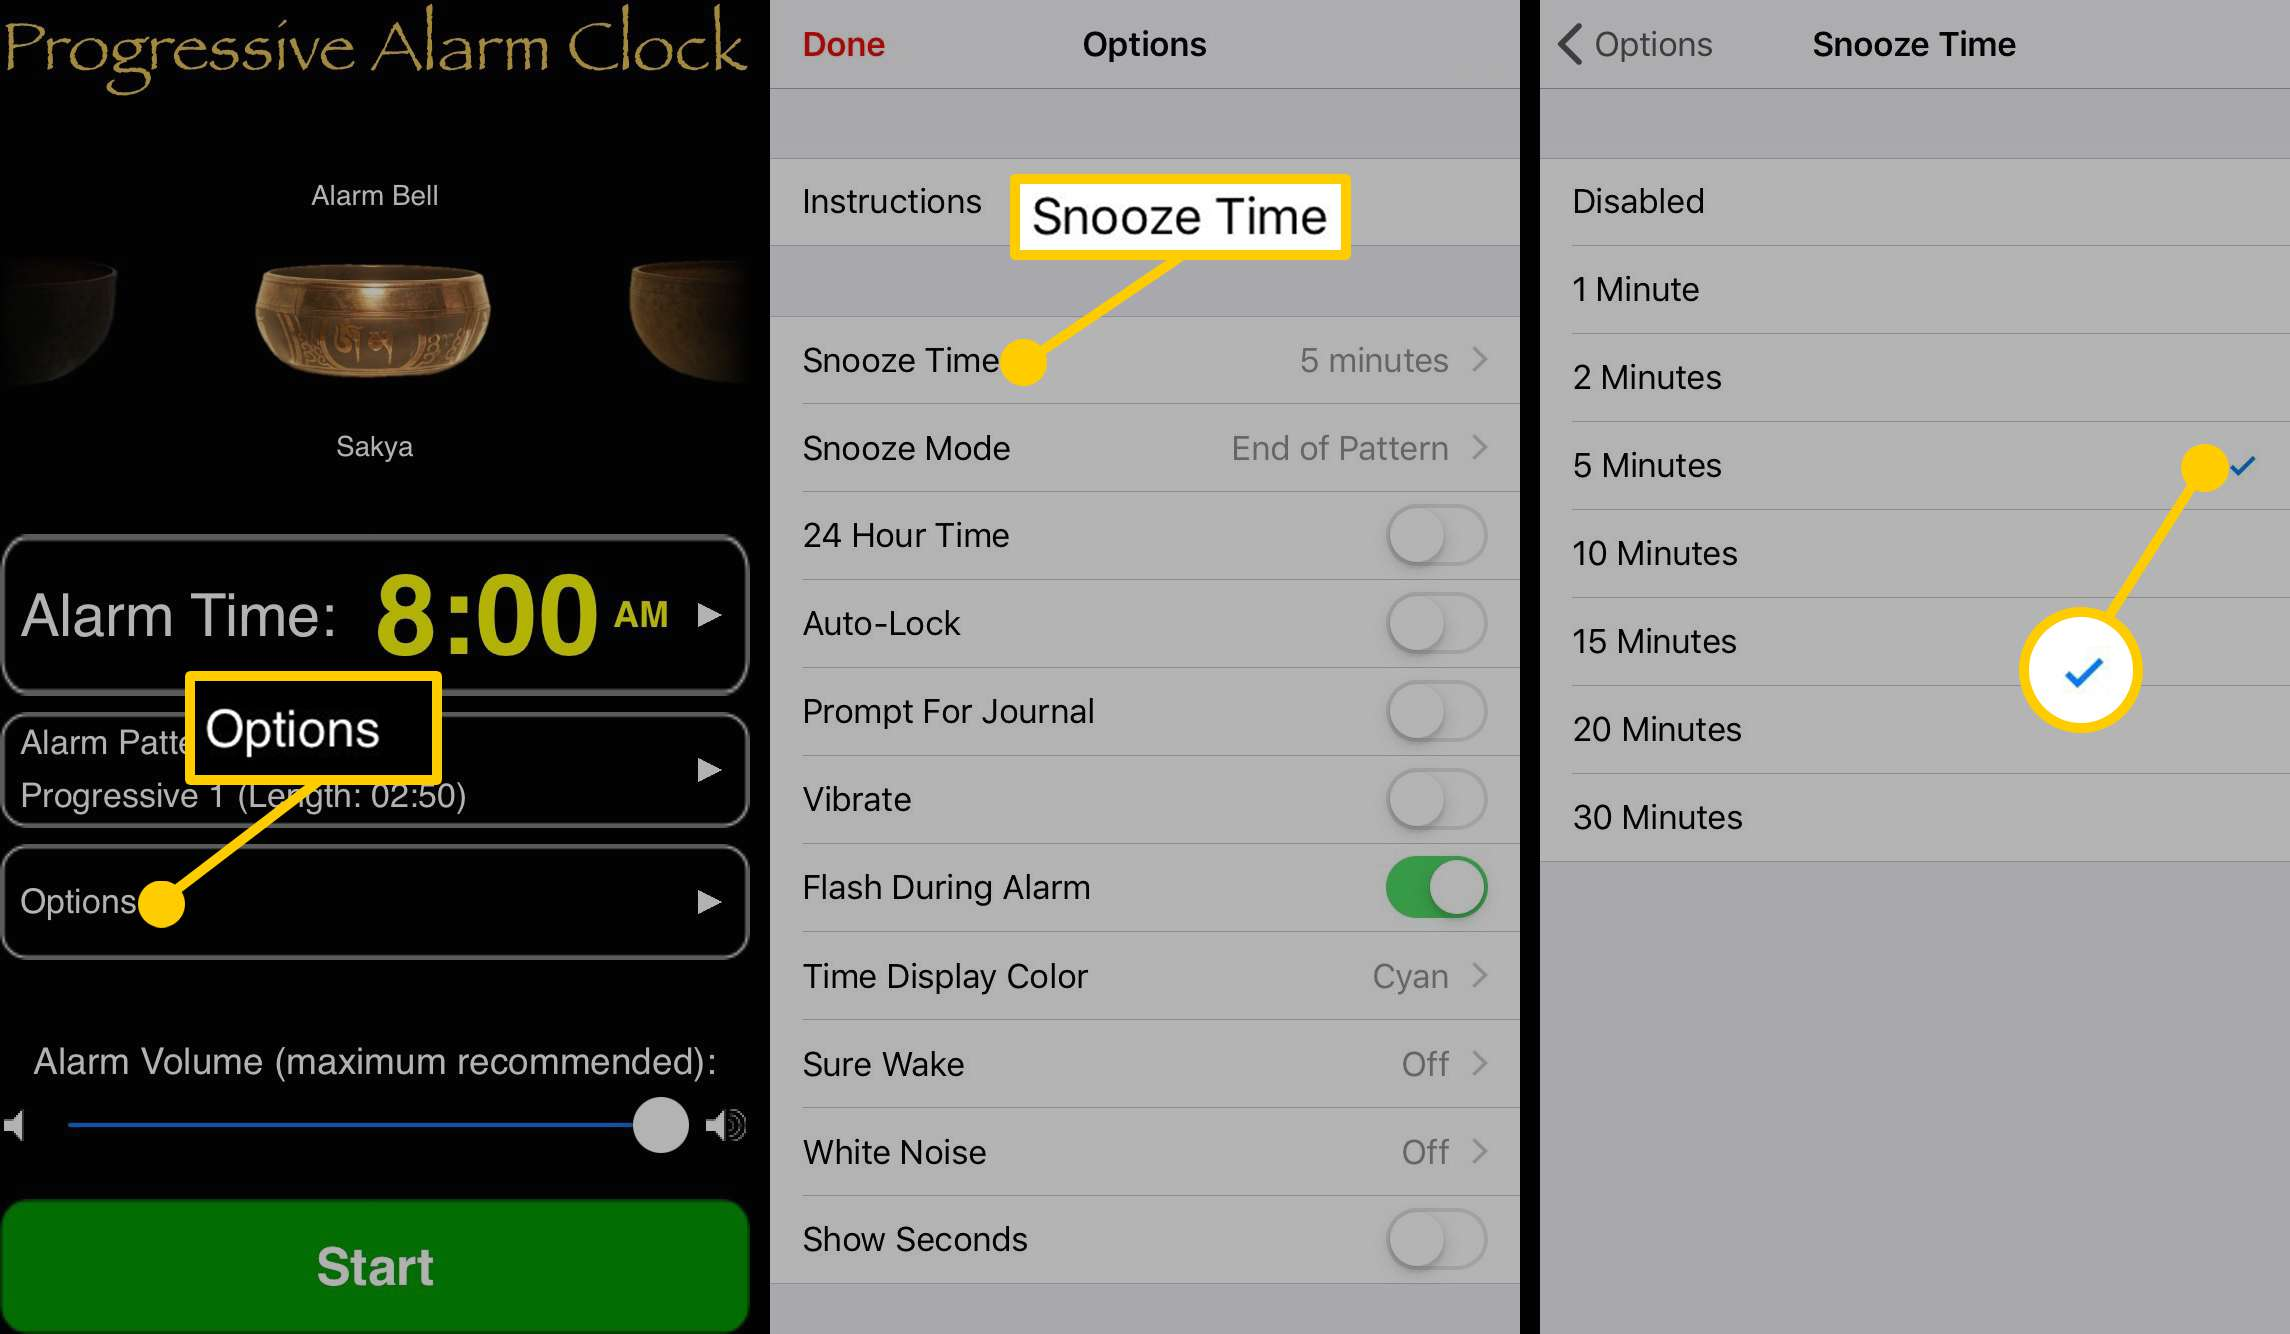 how to create a snooze time on the Progressive Alarm Clock app.